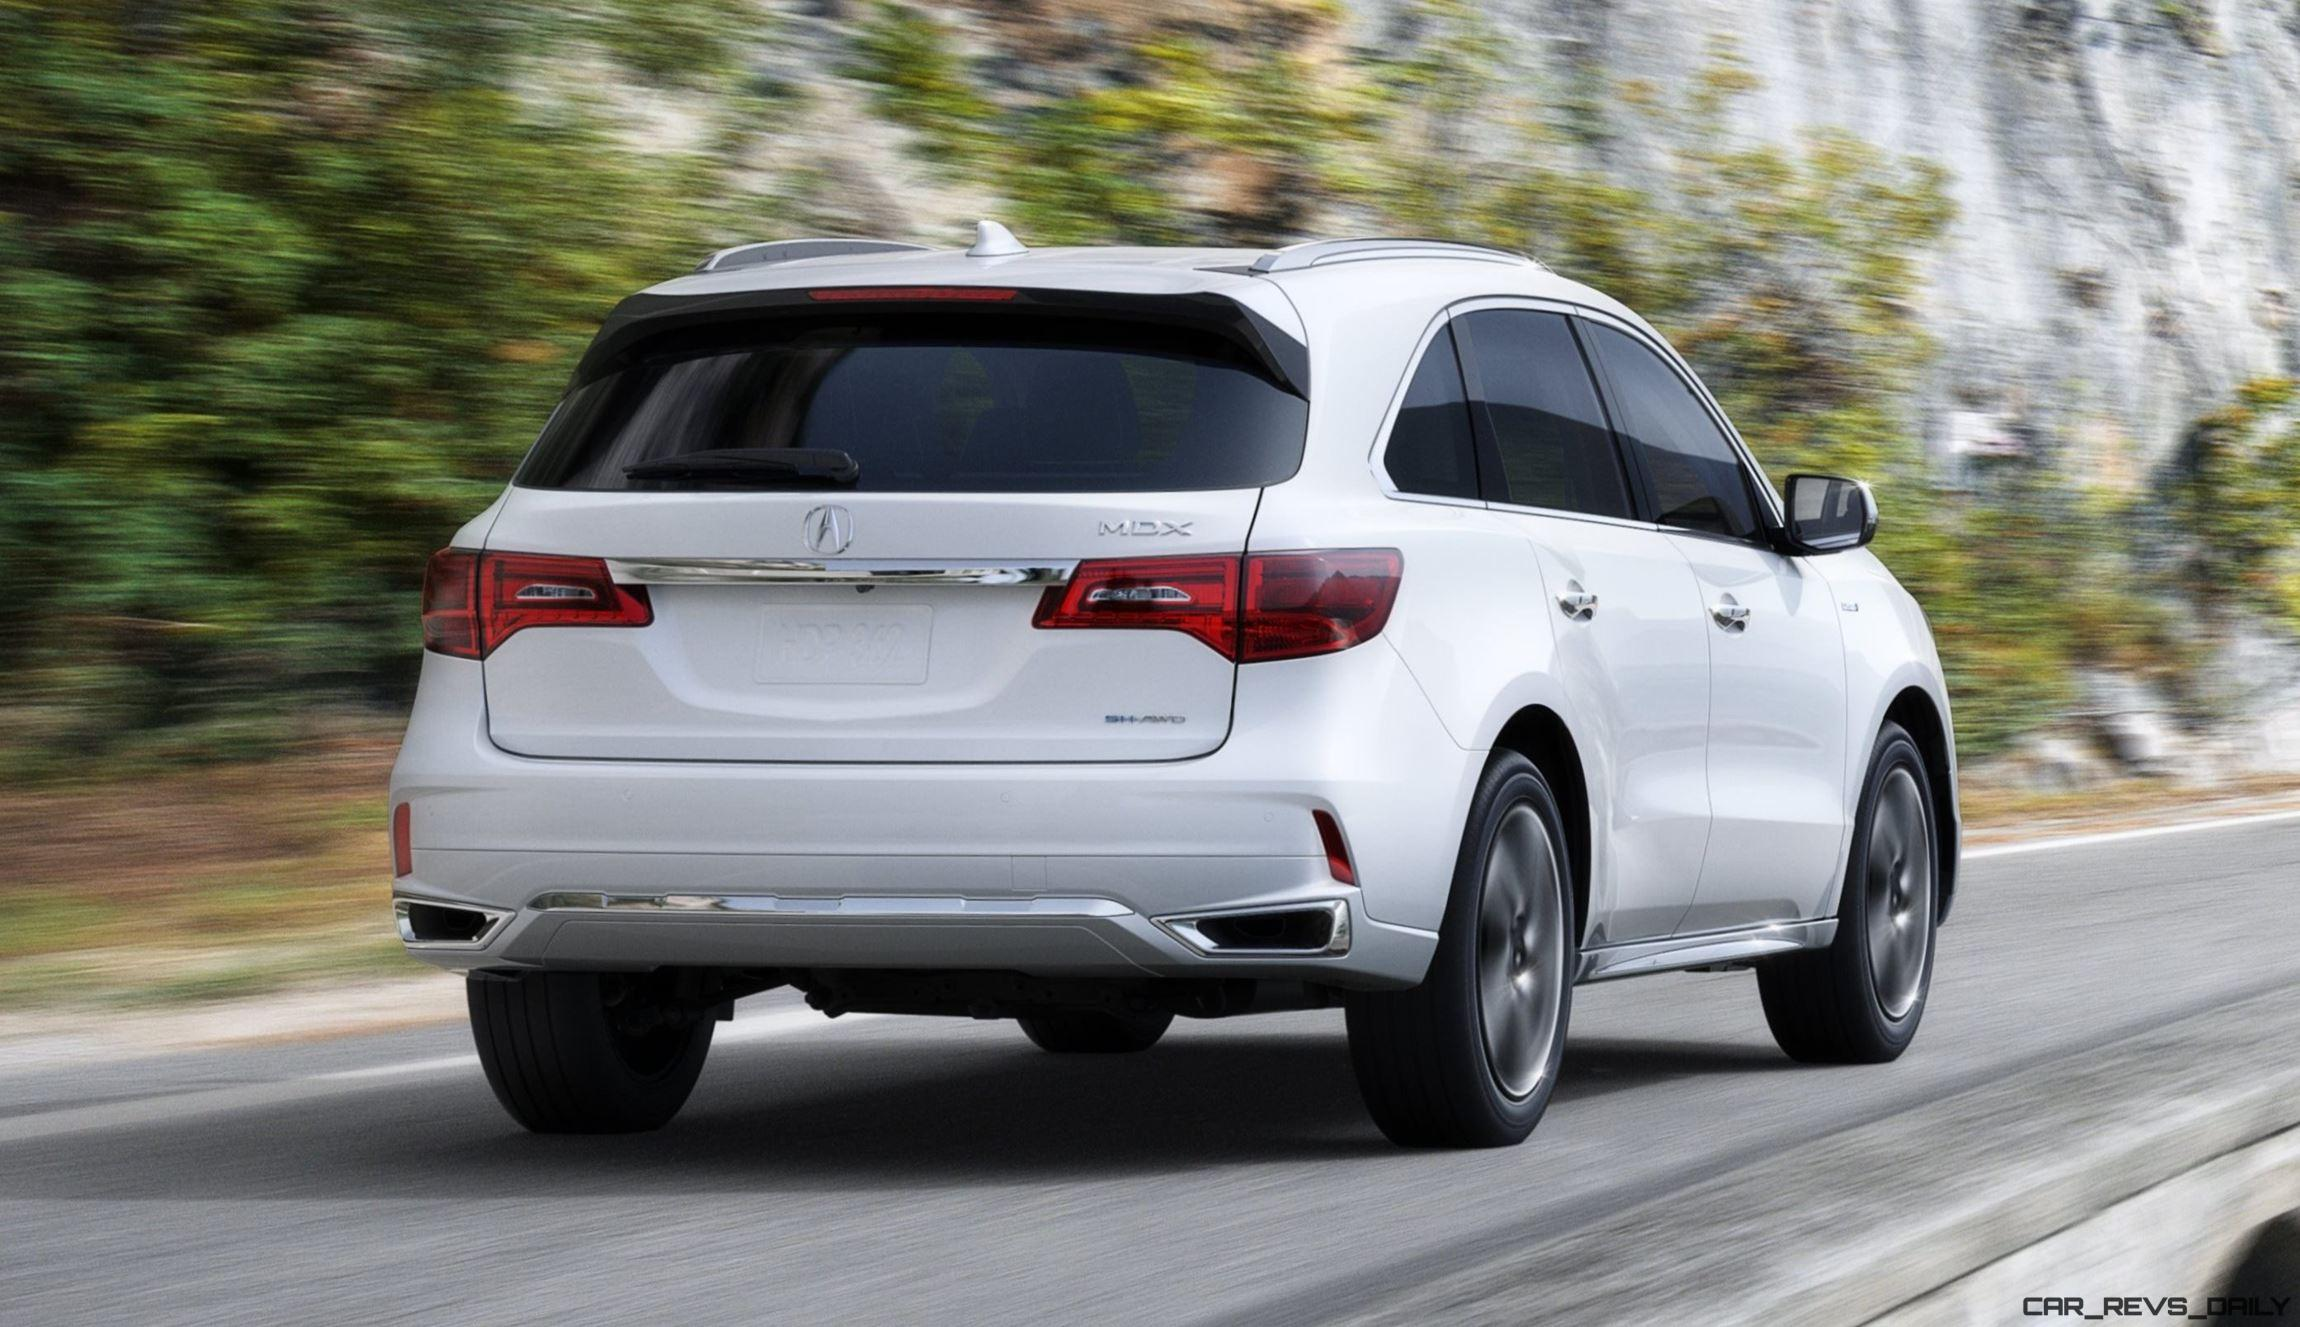 2017 acura mdx sport hybrid leads updated range 50 images car revs. Black Bedroom Furniture Sets. Home Design Ideas